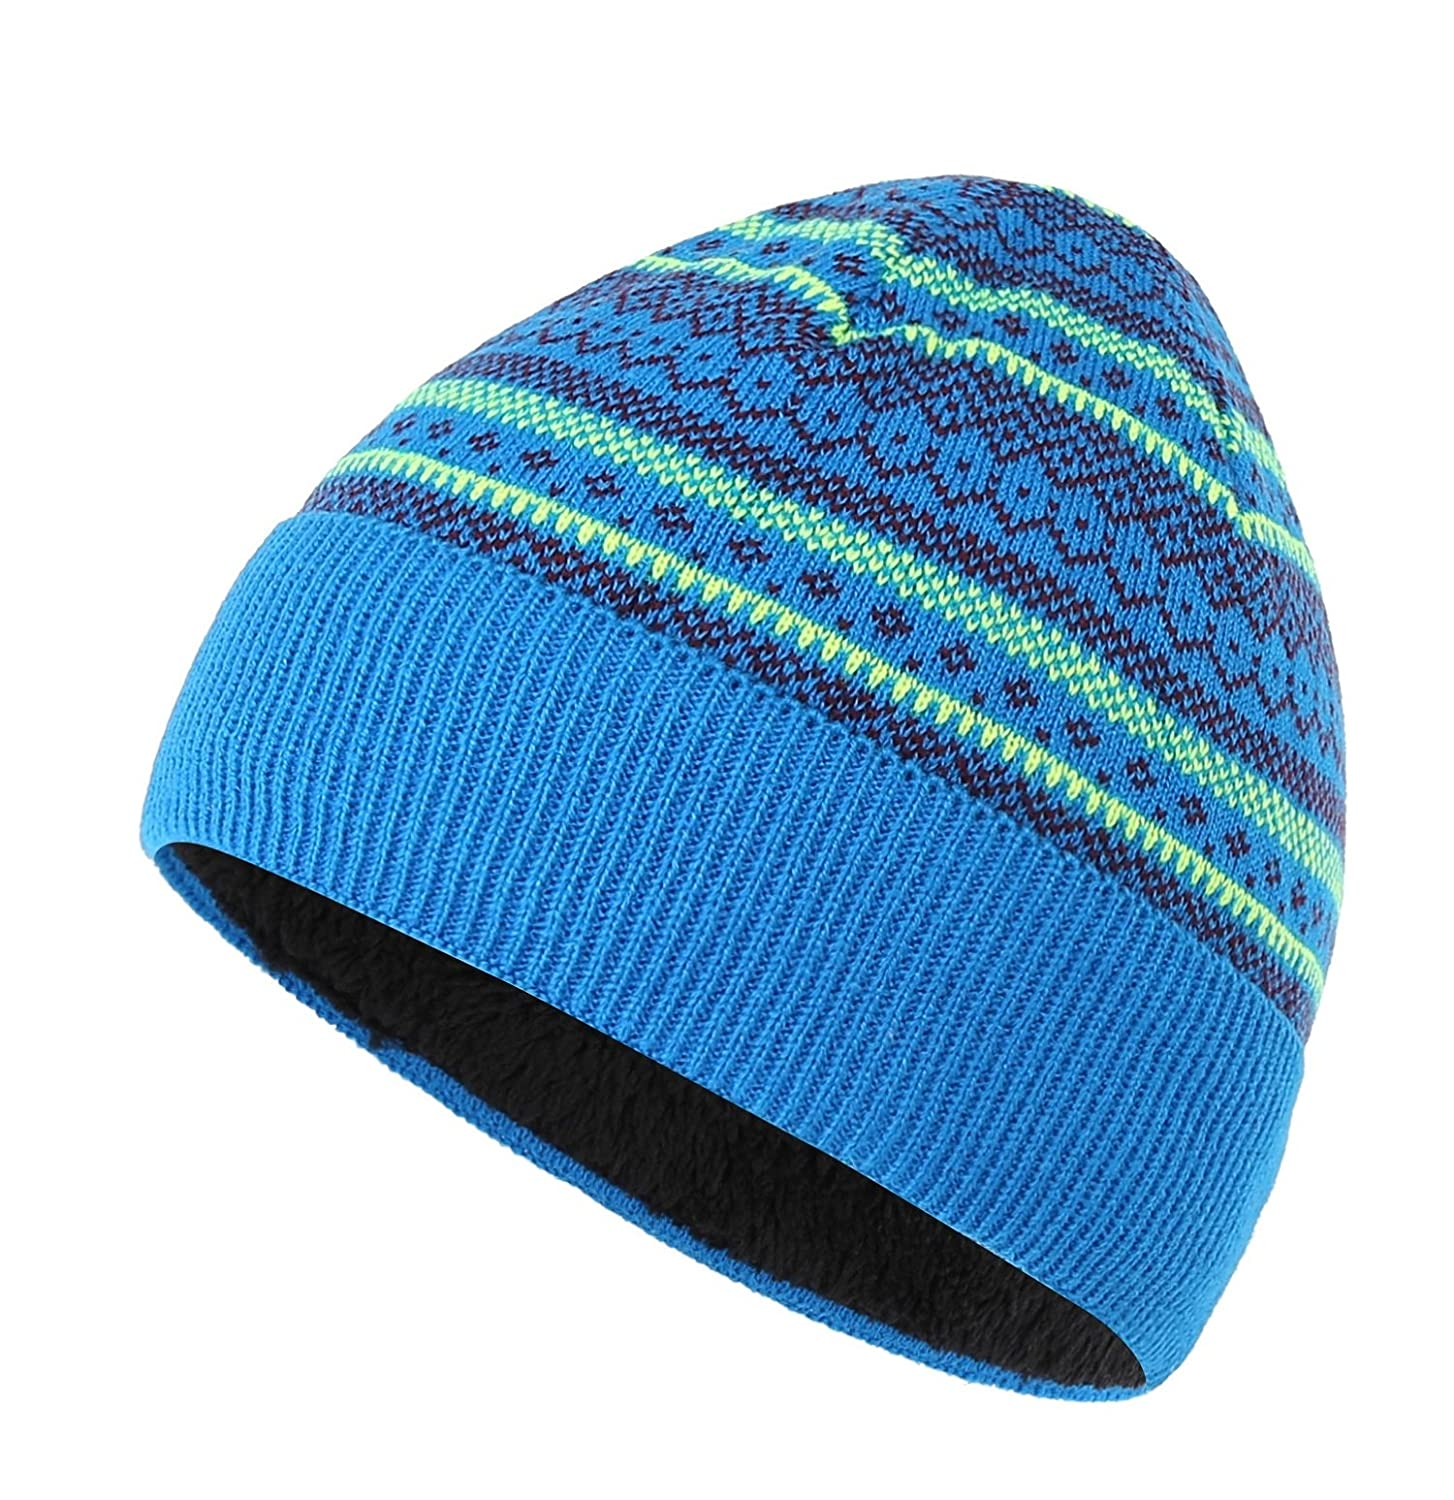 70105fd1 Hat shell: acrylic knit, Lining: soft polyester. Soft Polyester Sherpa  lined hat for extra warmth and comfort 48-54 cm/18.9-21.3 inch head  circumference ...